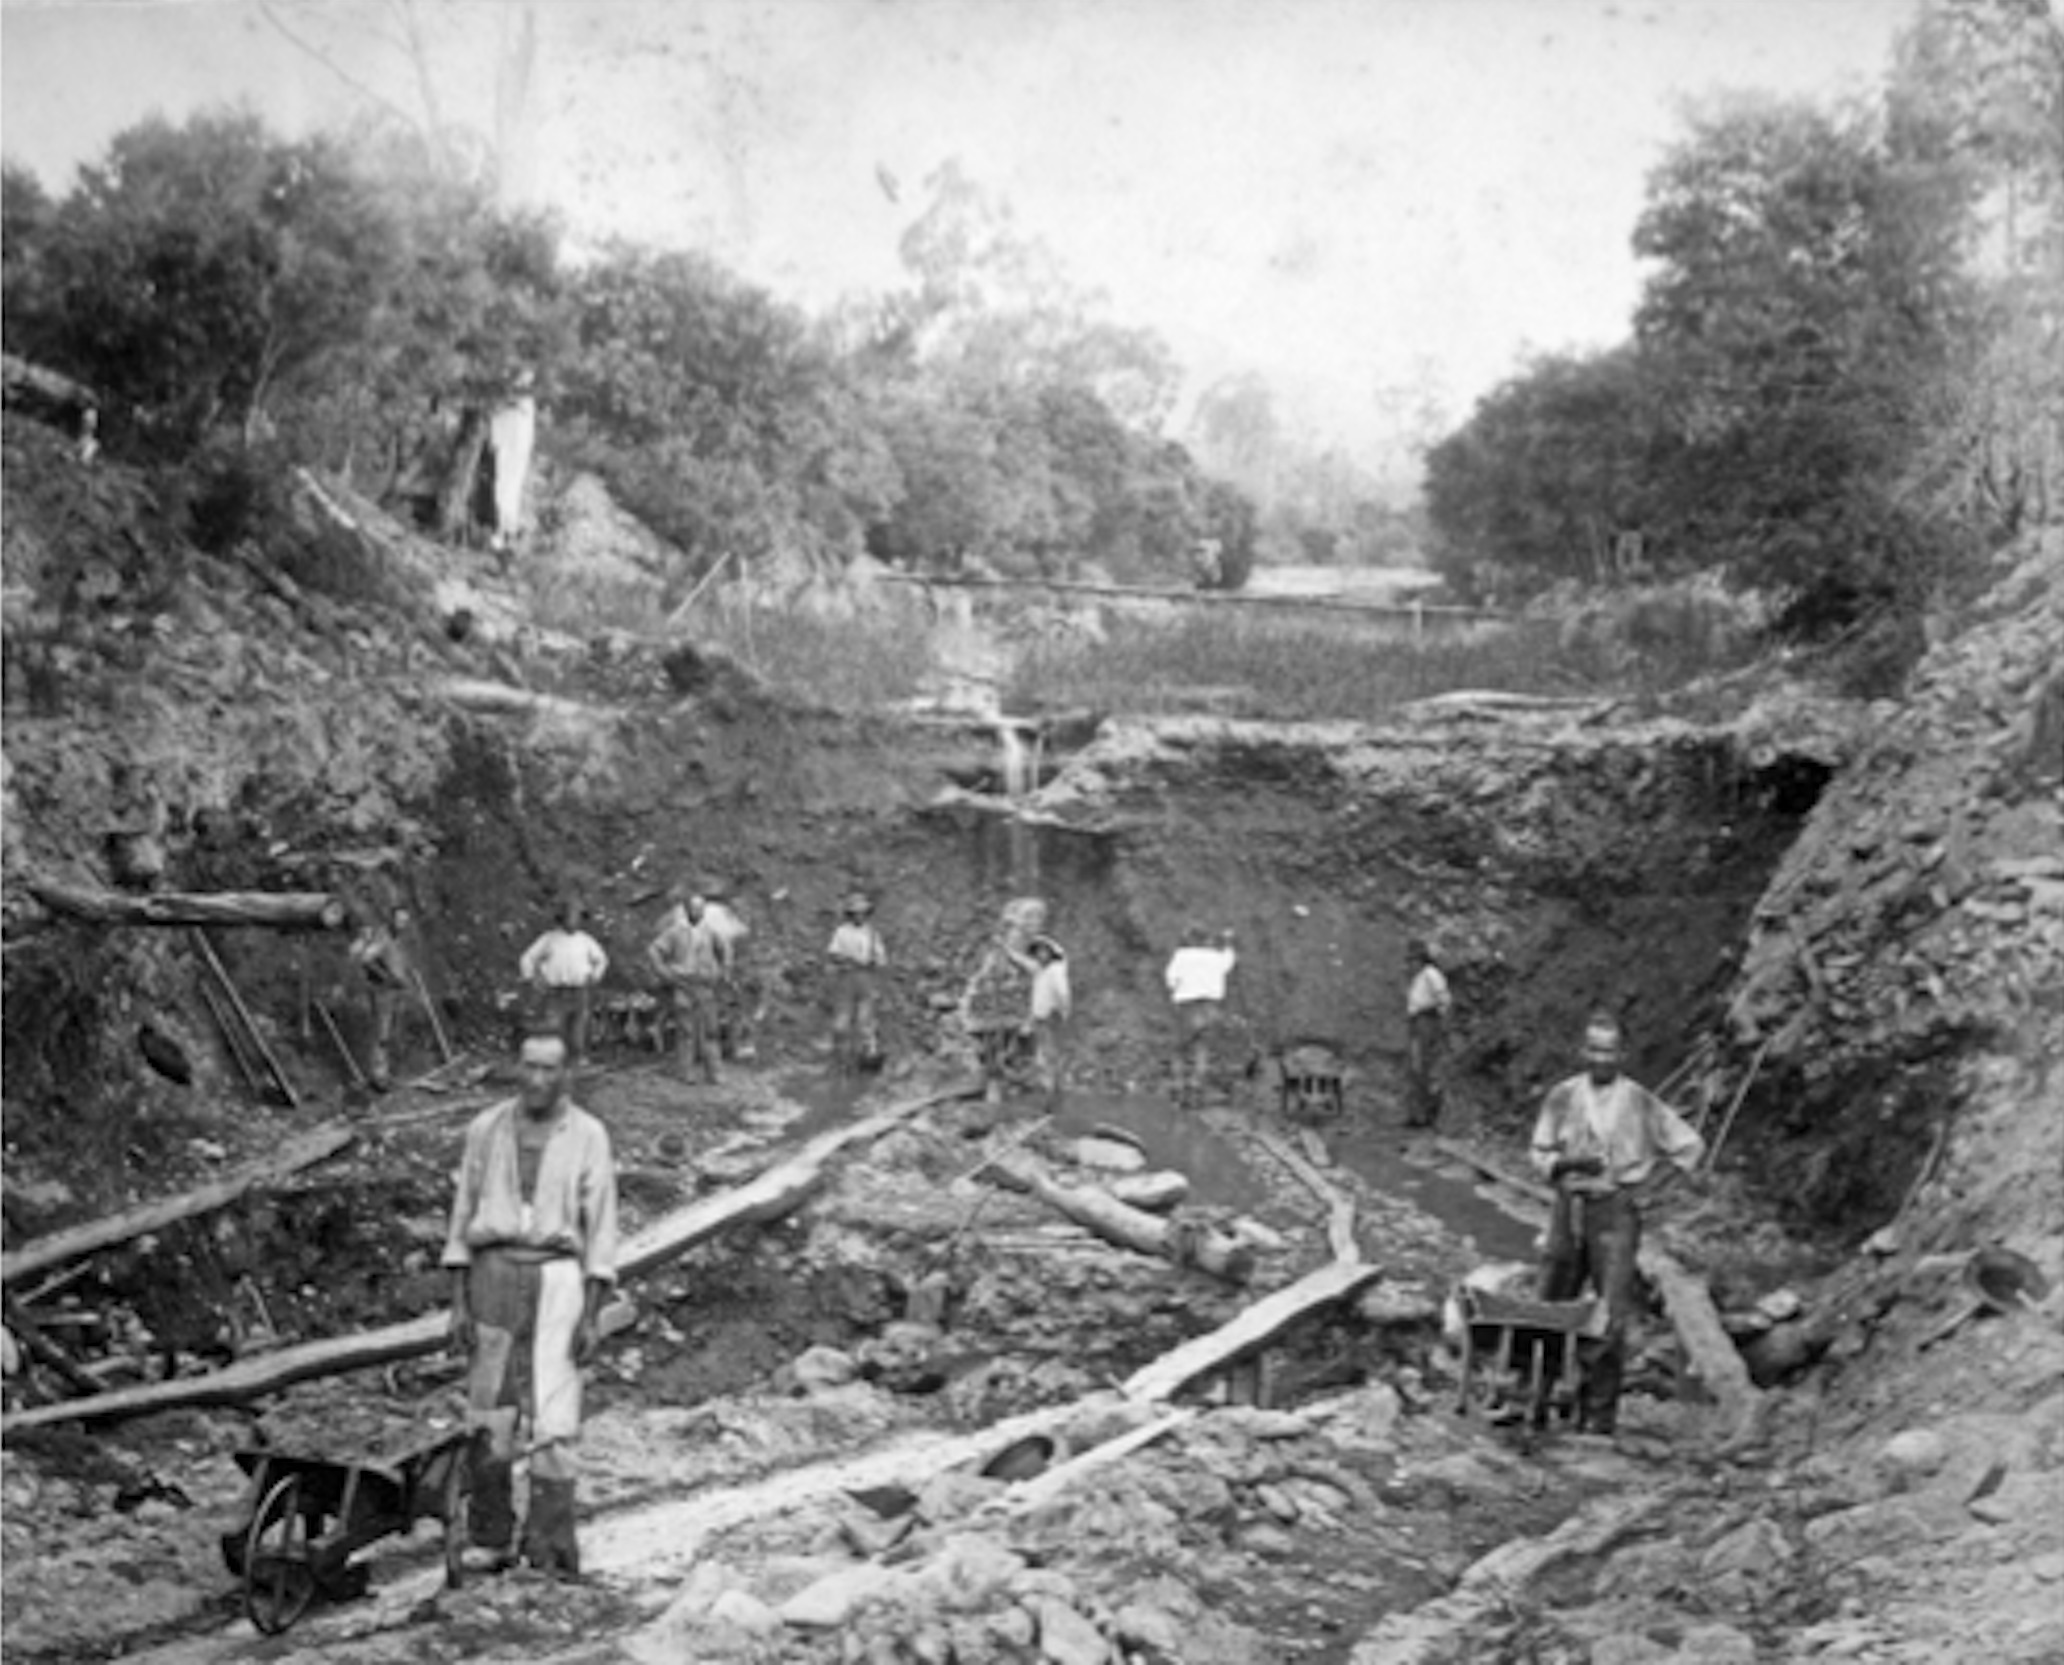 Chinese sluice-mining in creek bed, Ovens valley, 19th century